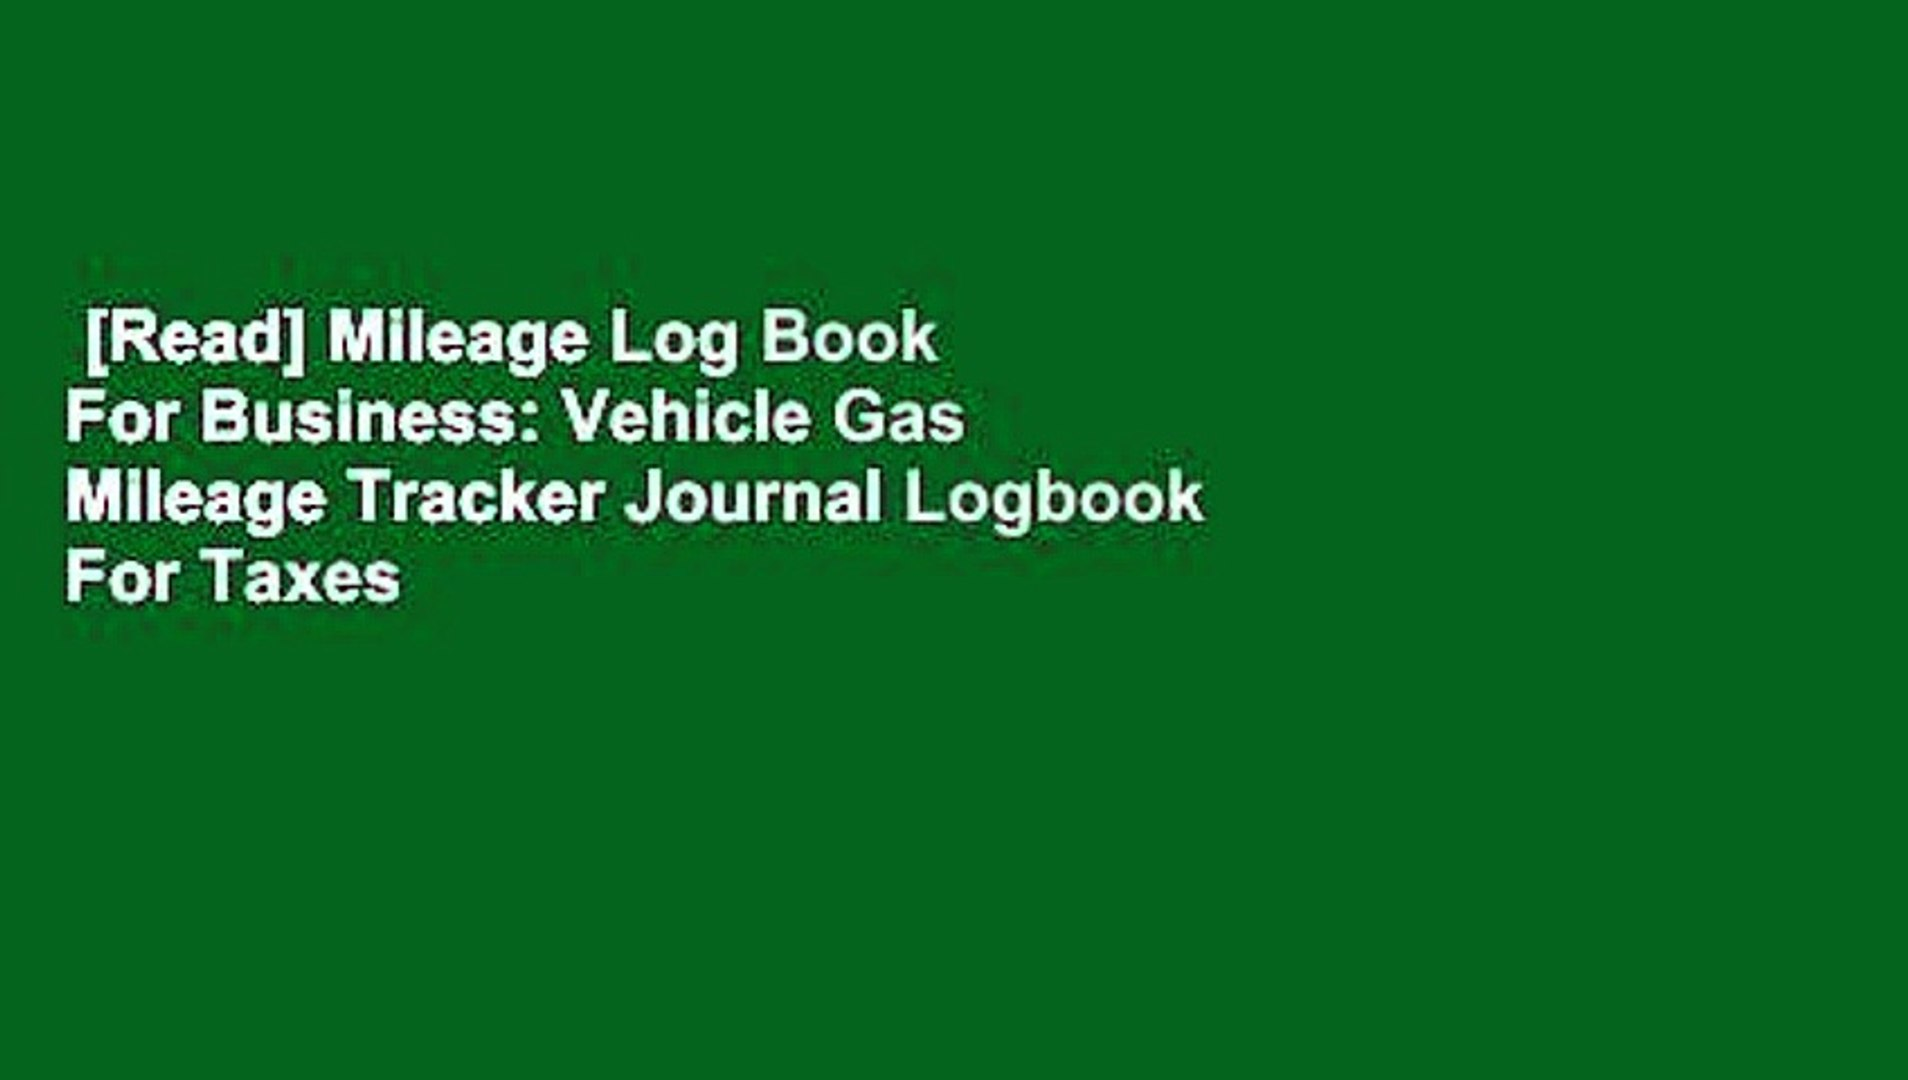 [Read] Mileage Log Book For Business: Vehicle Gas Mileage Tracker Journal  Logbook For Taxes For